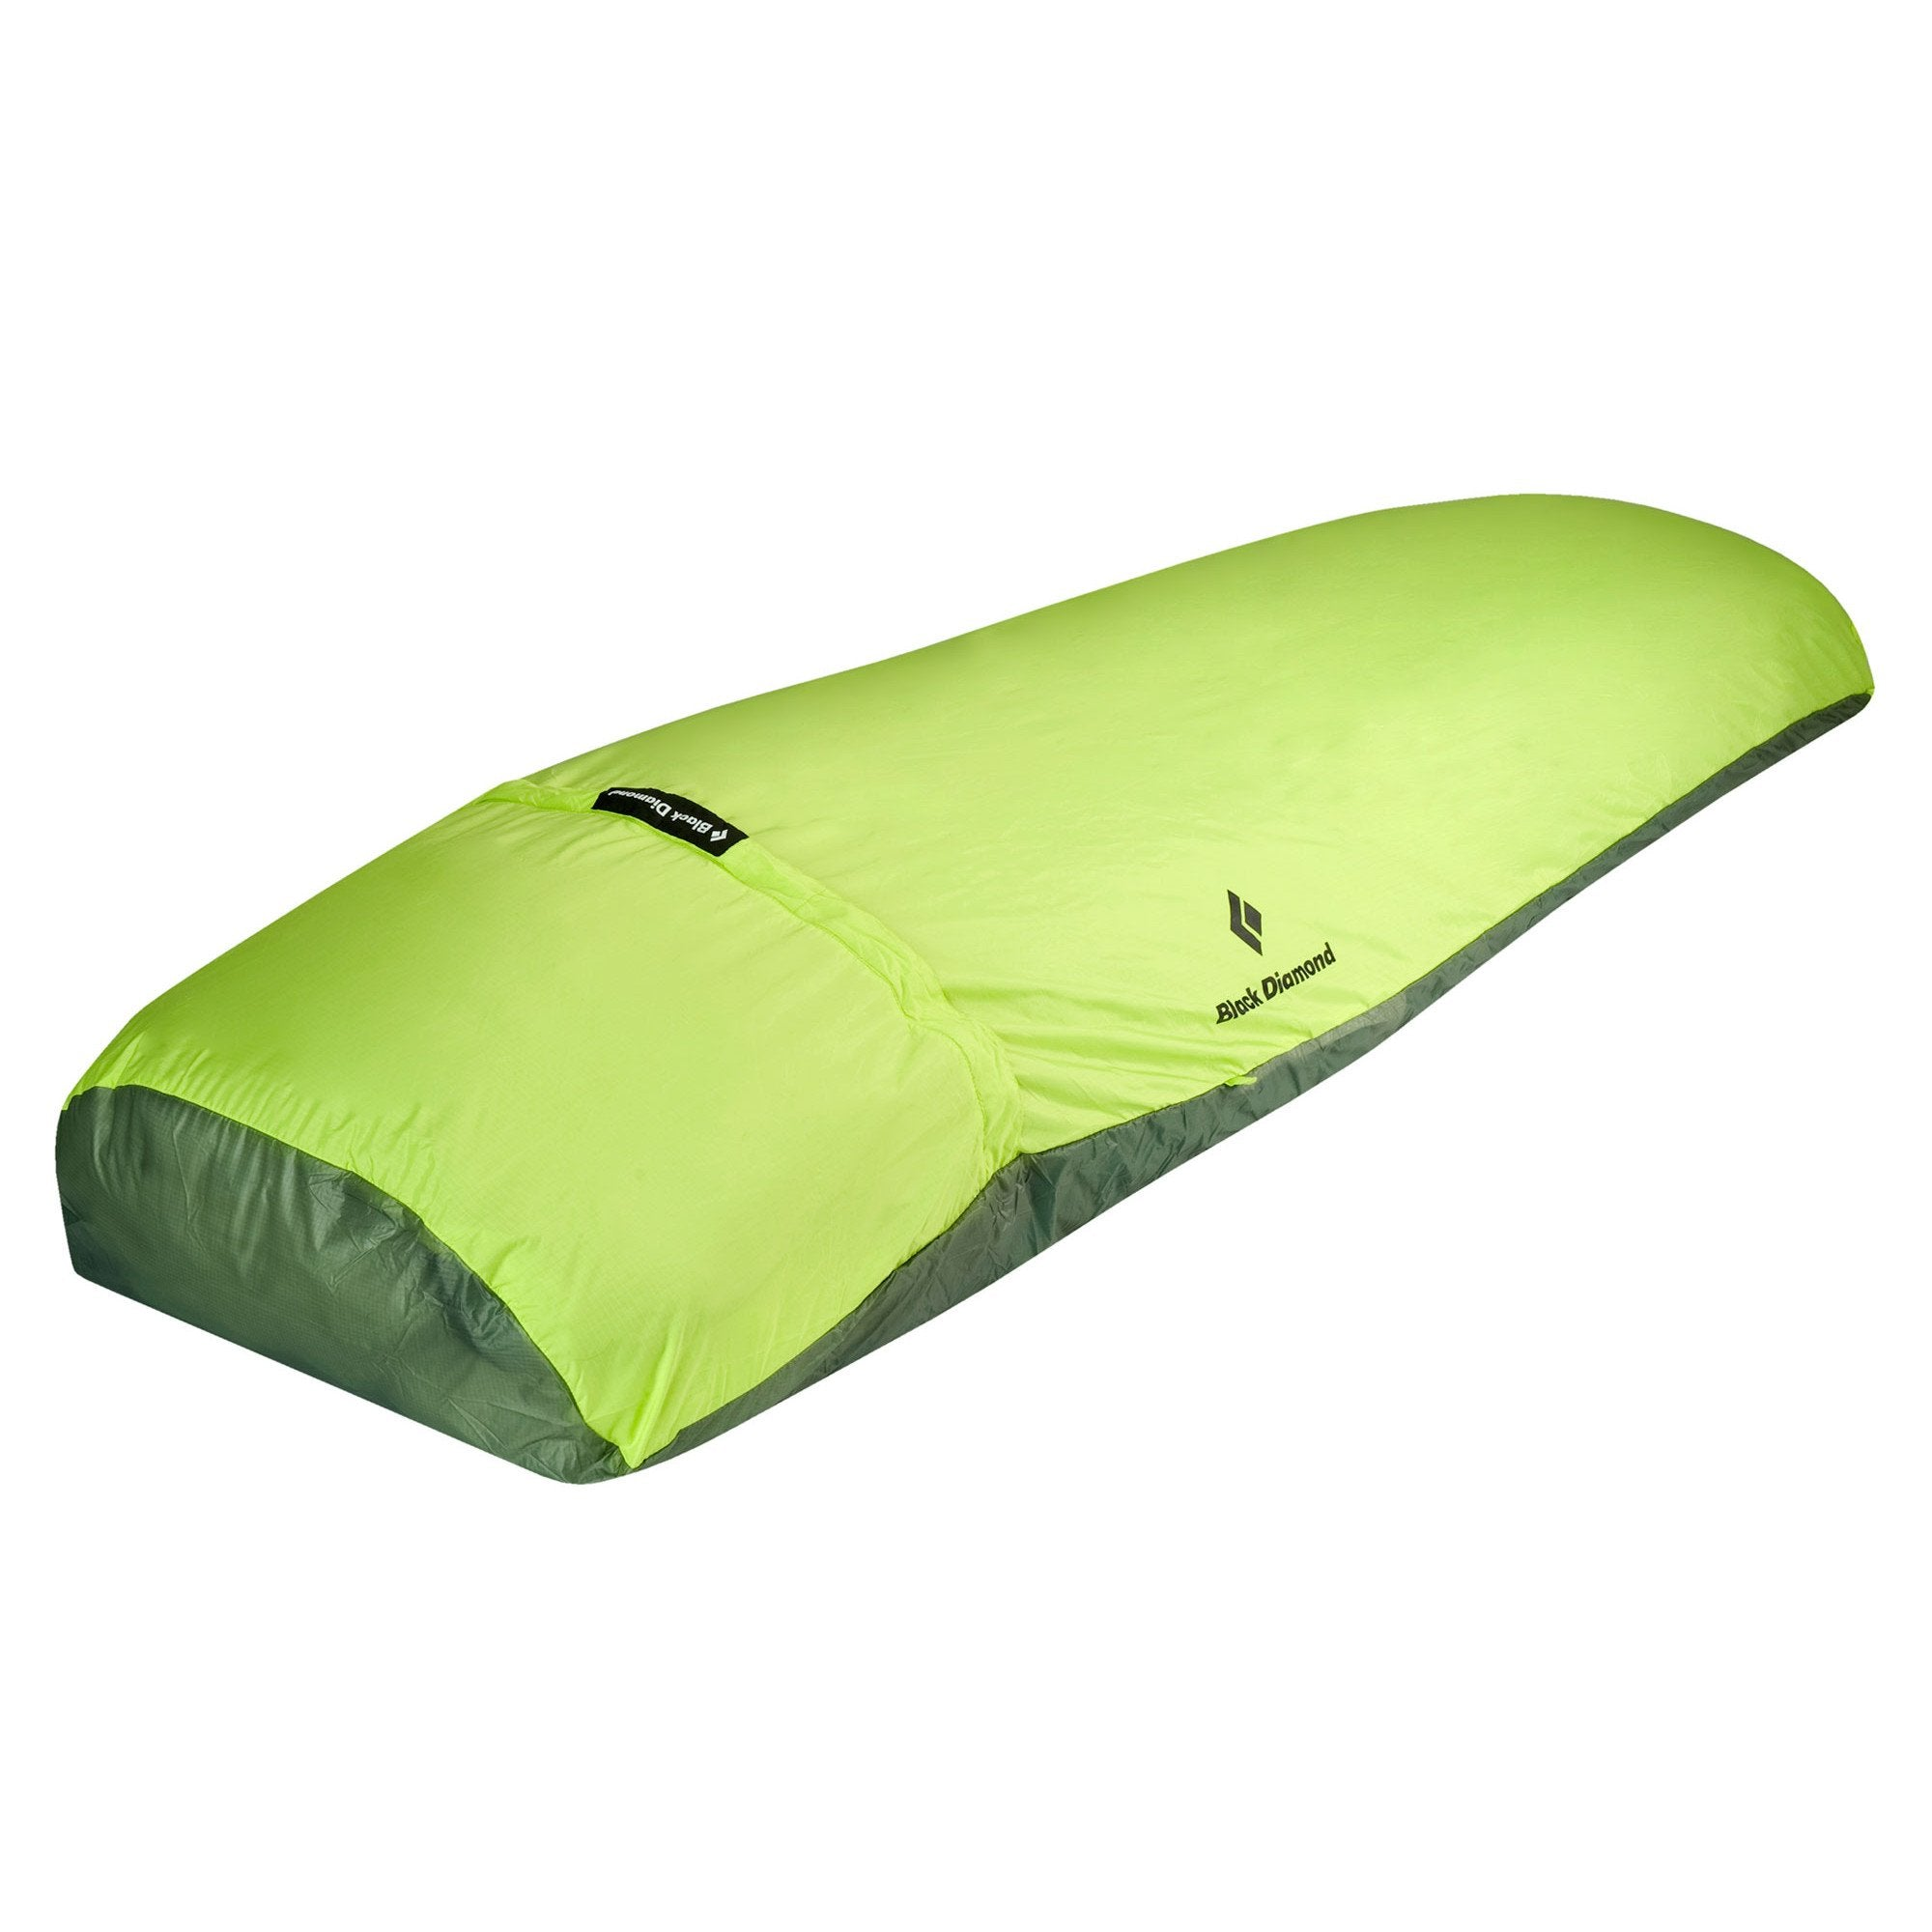 Black Diamond Twilight Bivy, front/side view shown laid out, in green colour